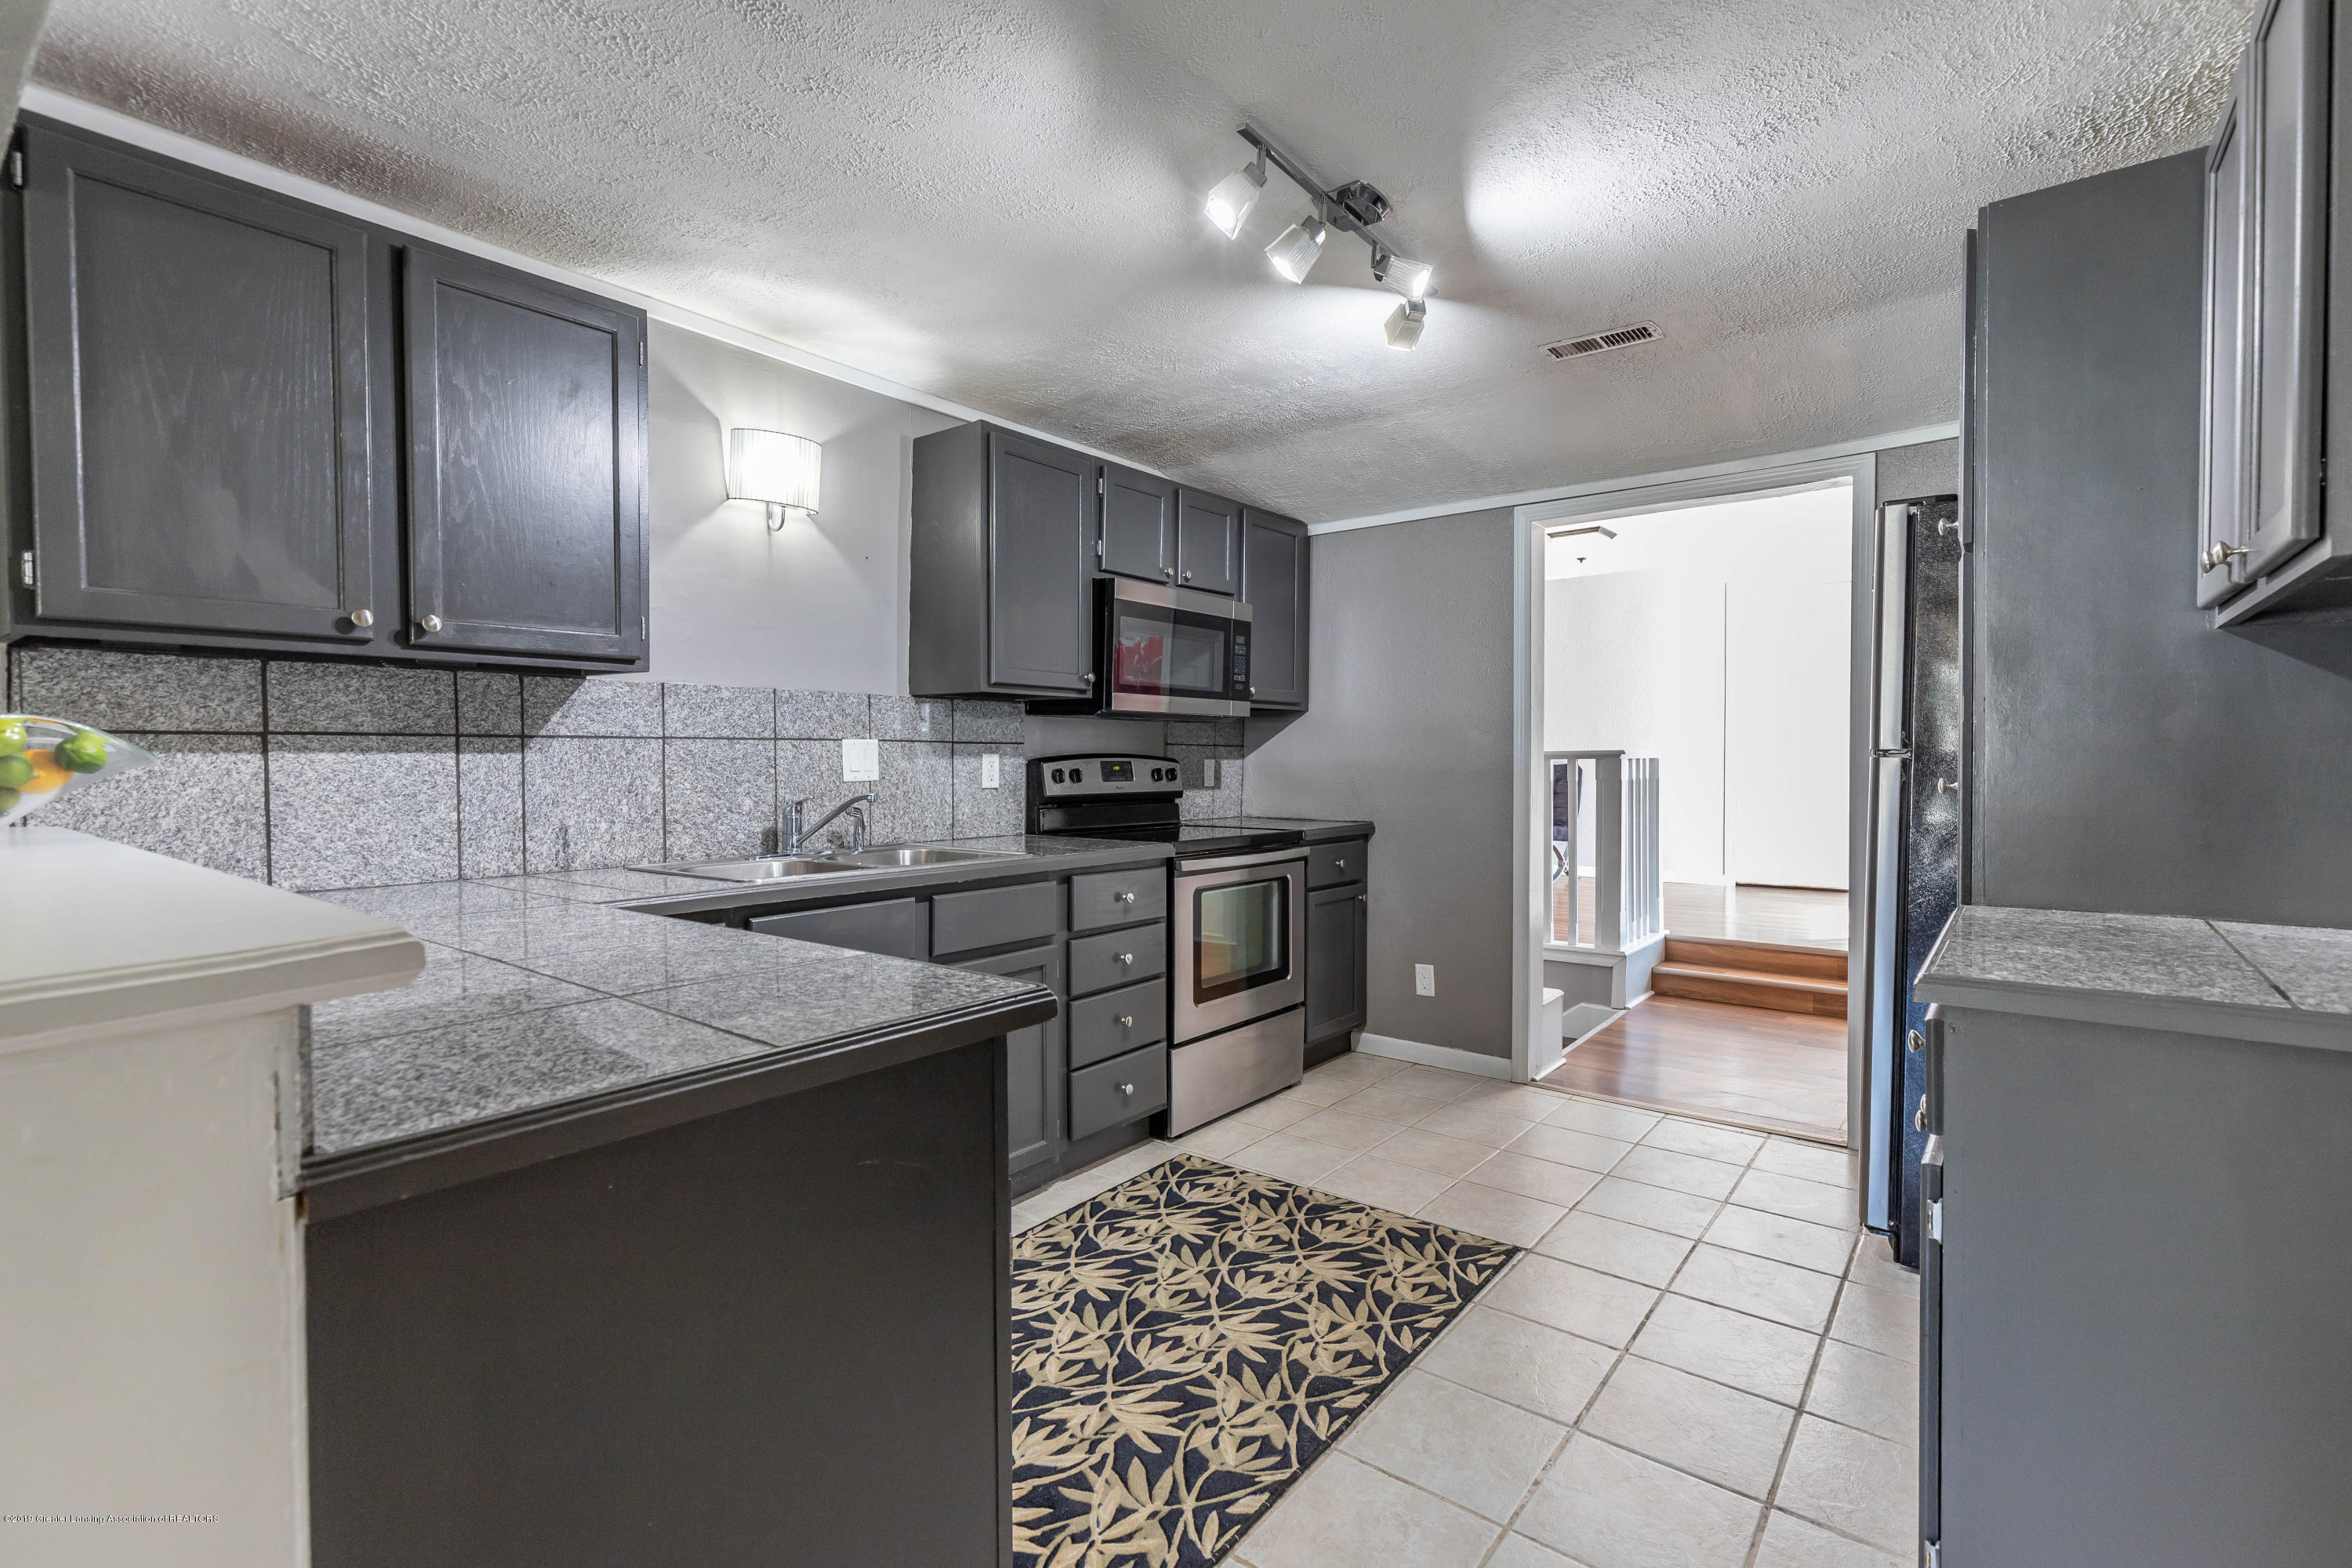 815 Pine St - Kitchen - 8